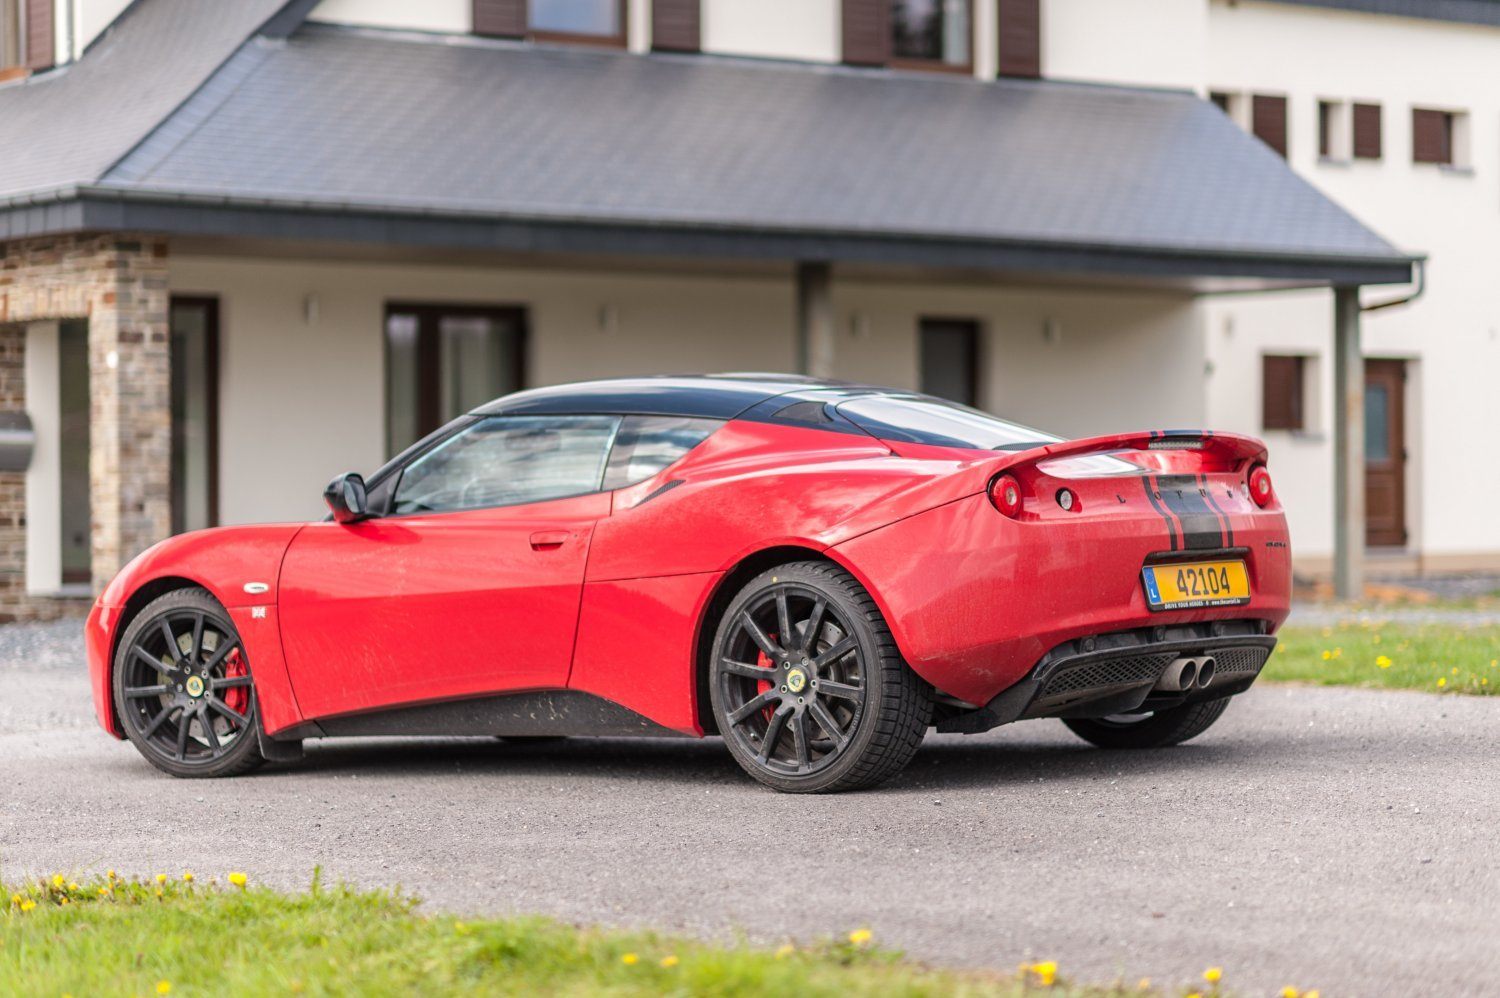 Lilly - 2015 Lotus Evora 280 Sports Racer